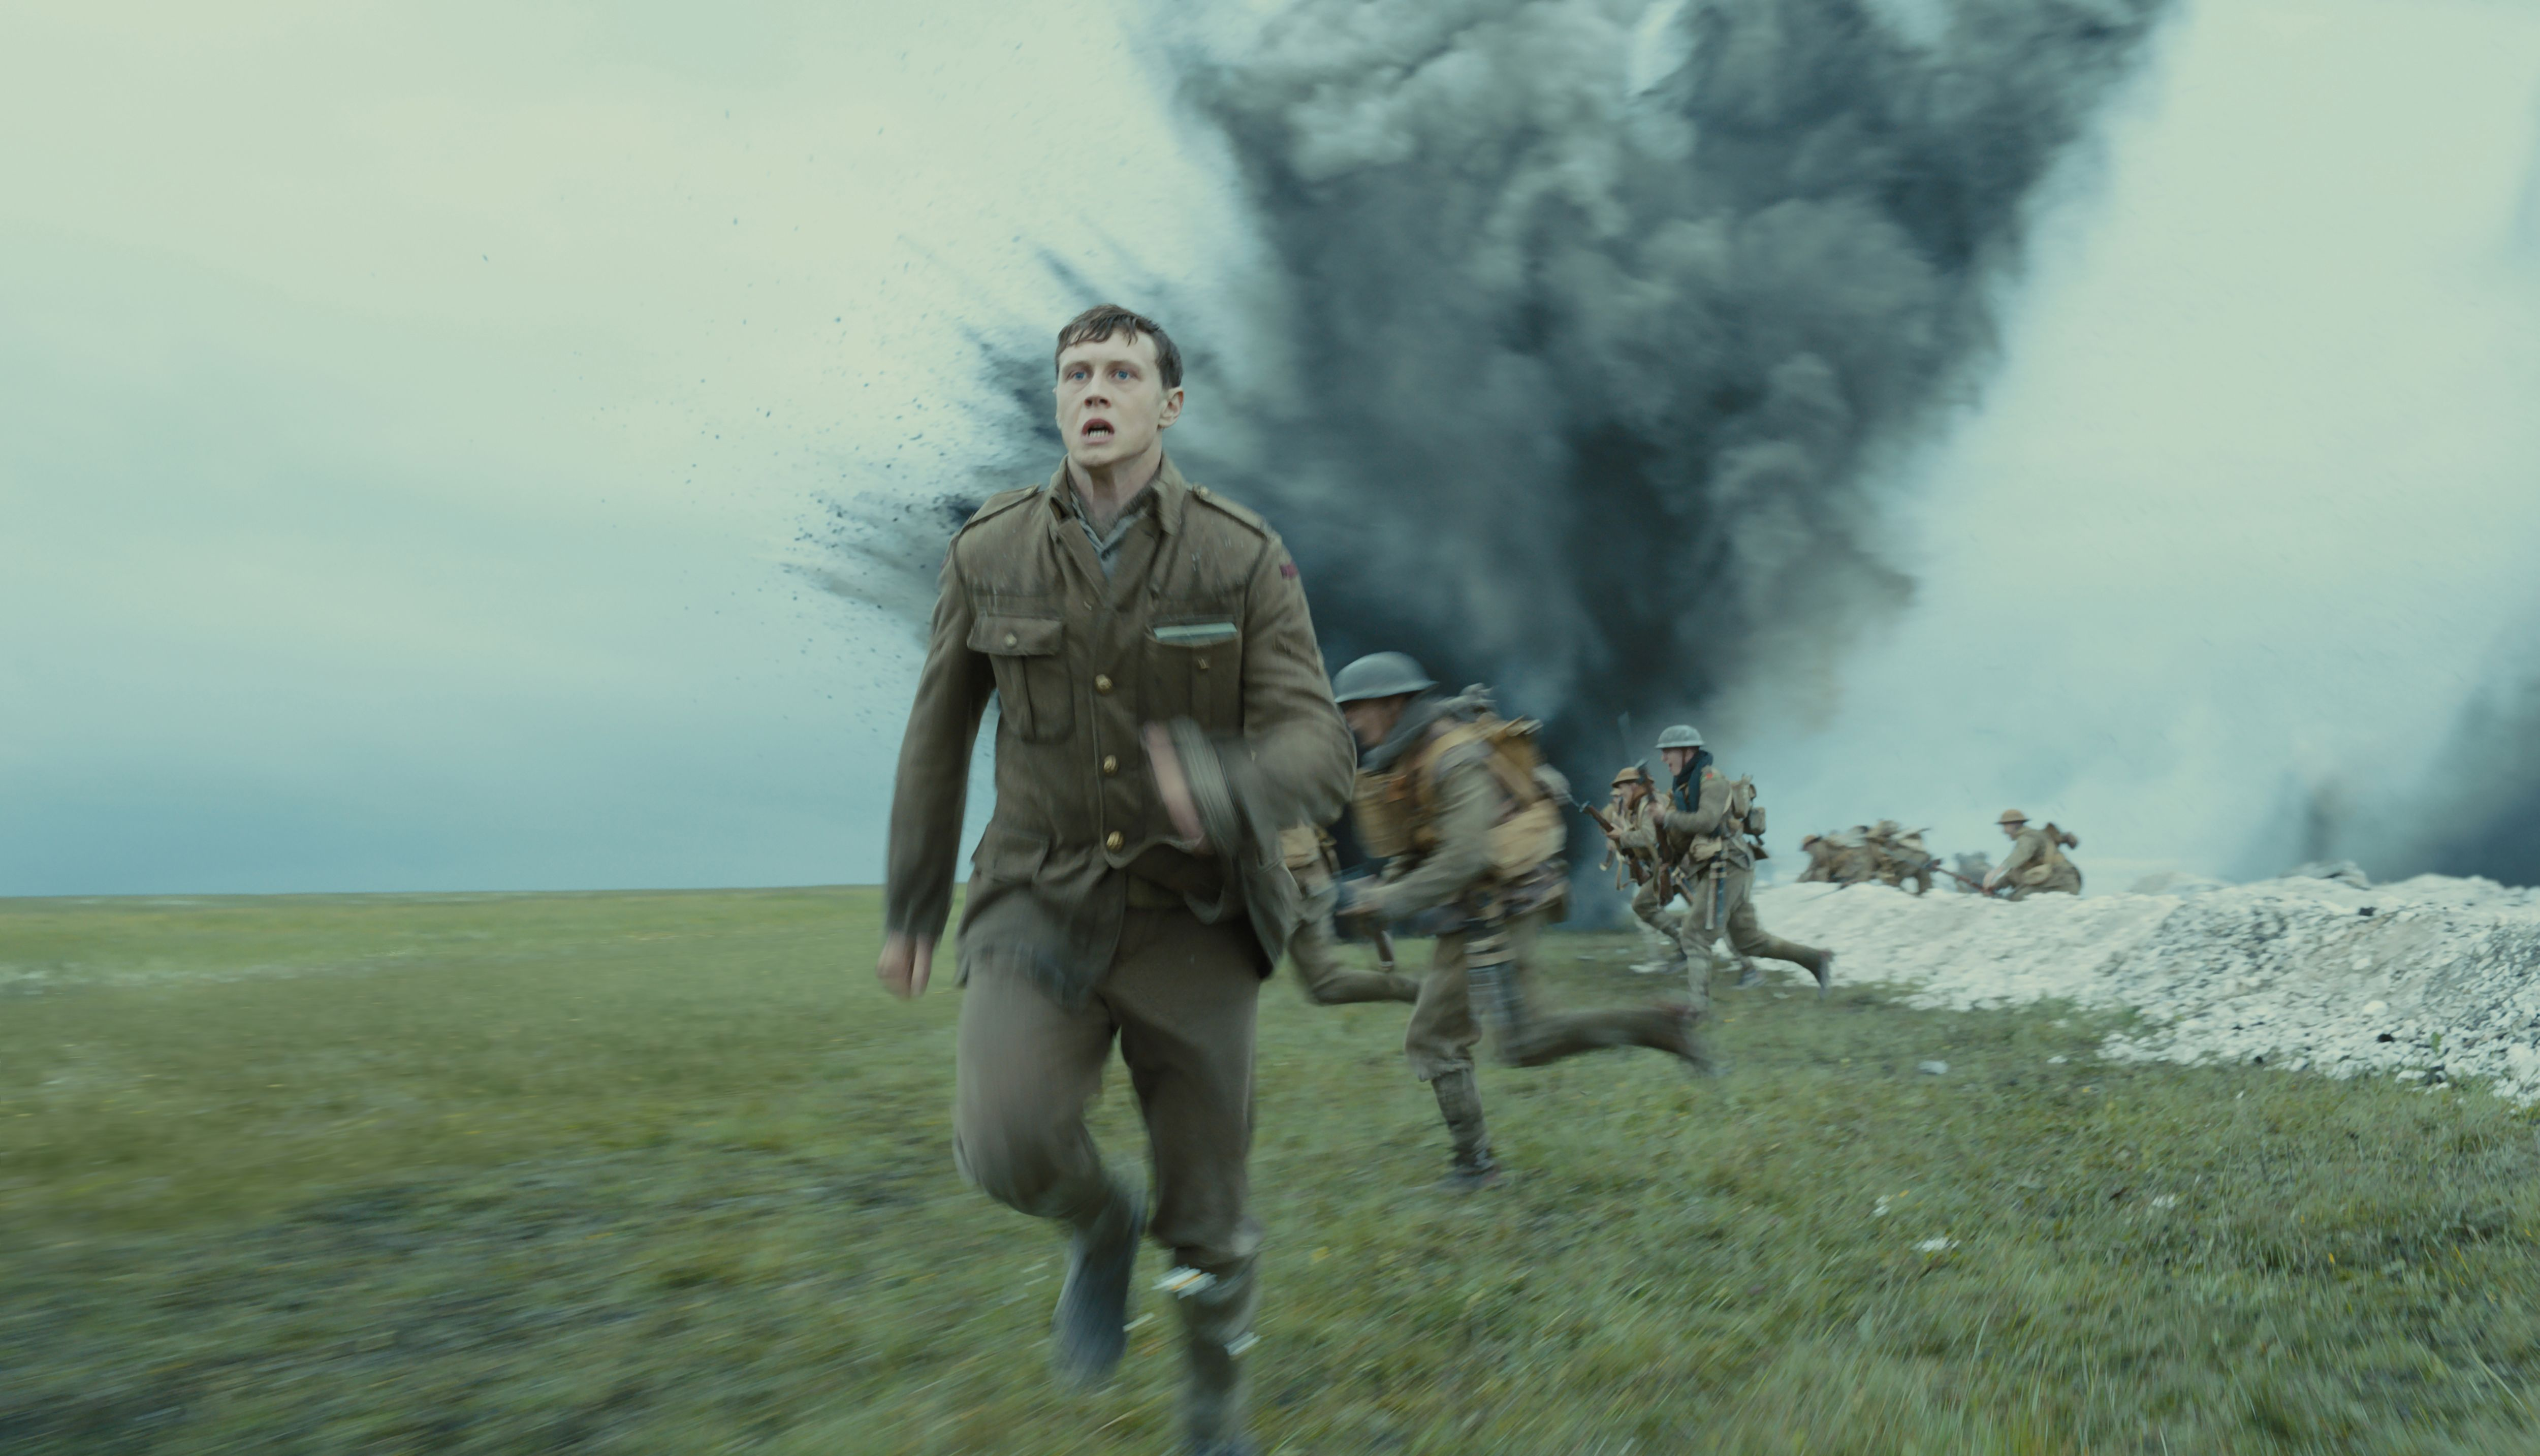 All About the Real-Life Story Behind Oscar-Nominated War Movie 1917